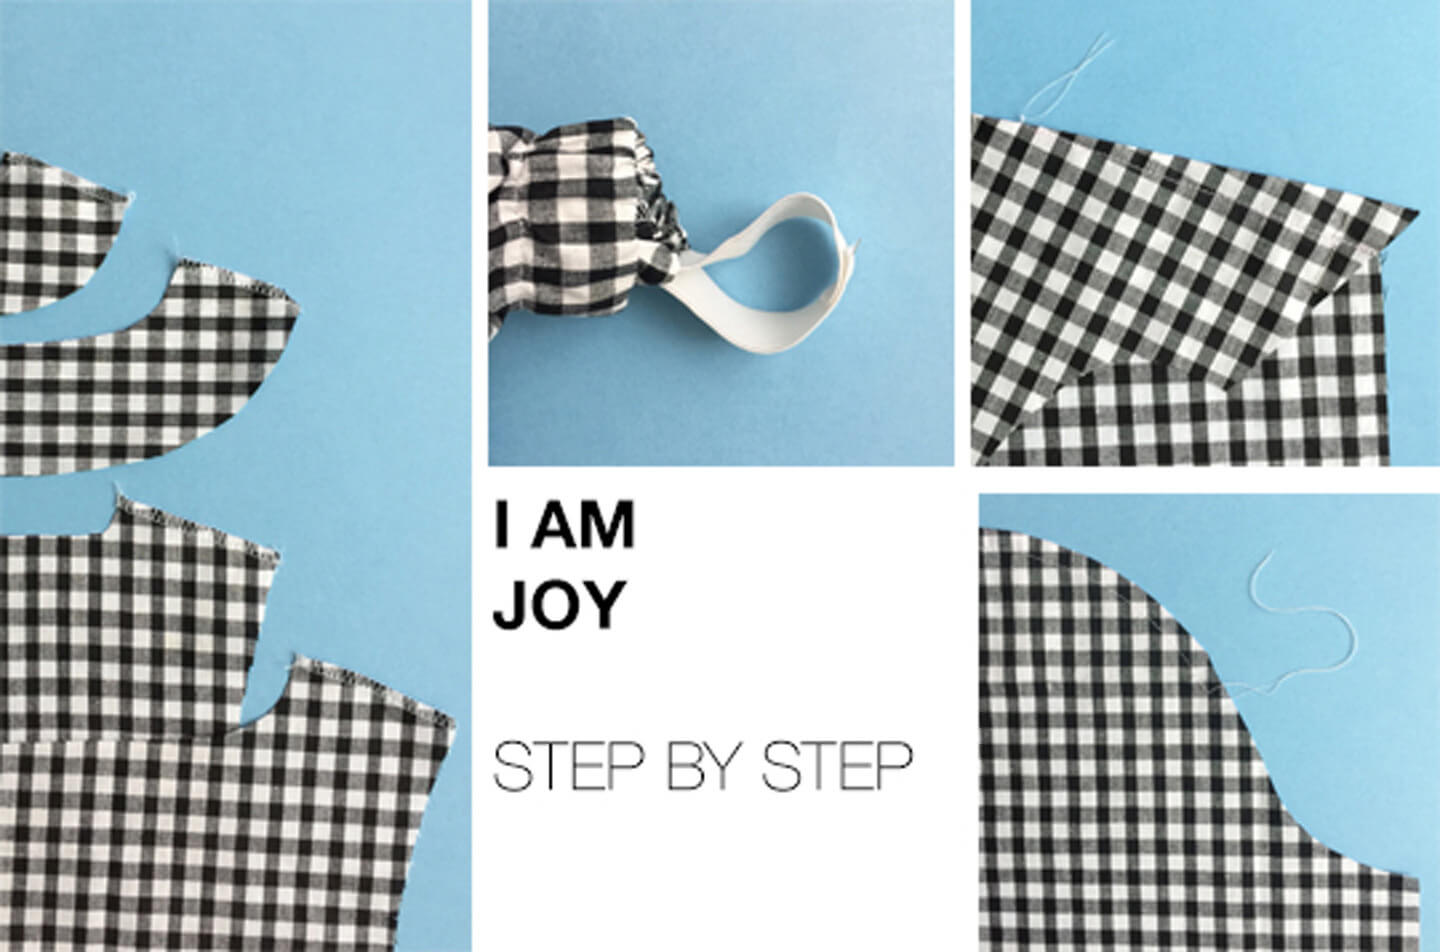 I AM patterns - sewing pattern how to sew blouse Joy banner